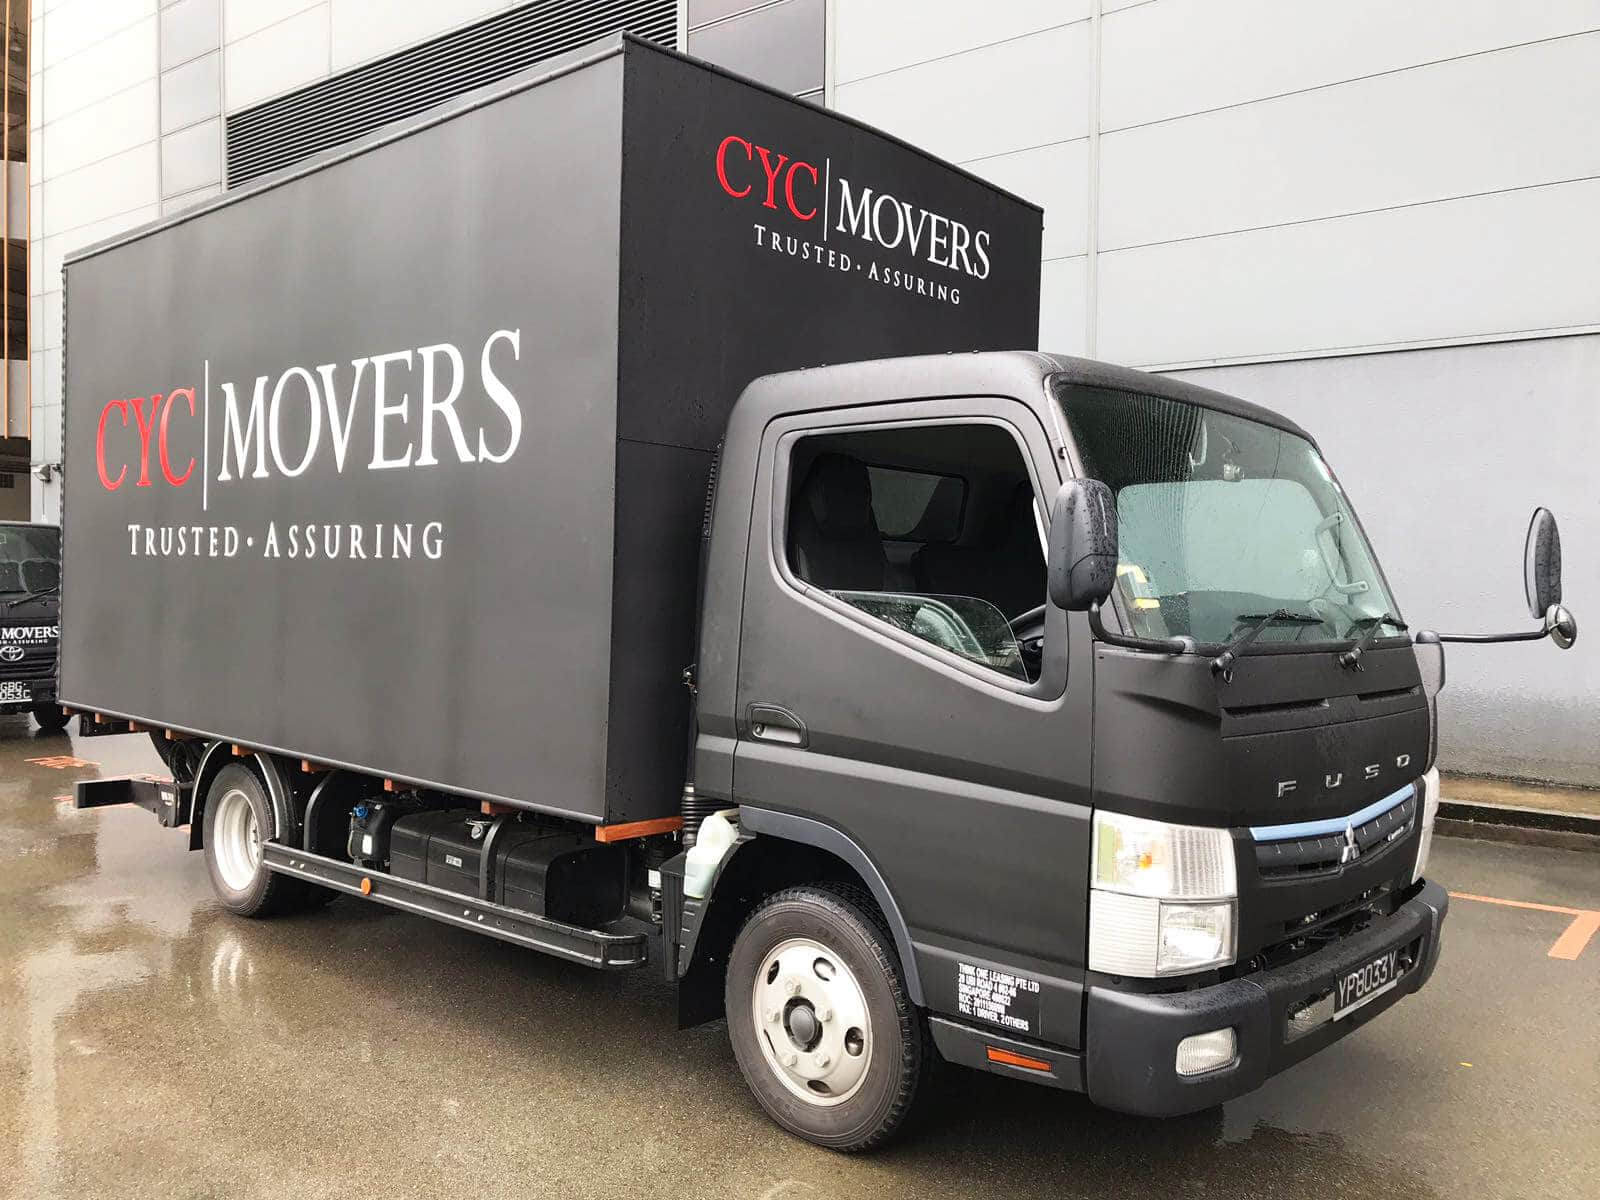 CYC Movers Truck 2